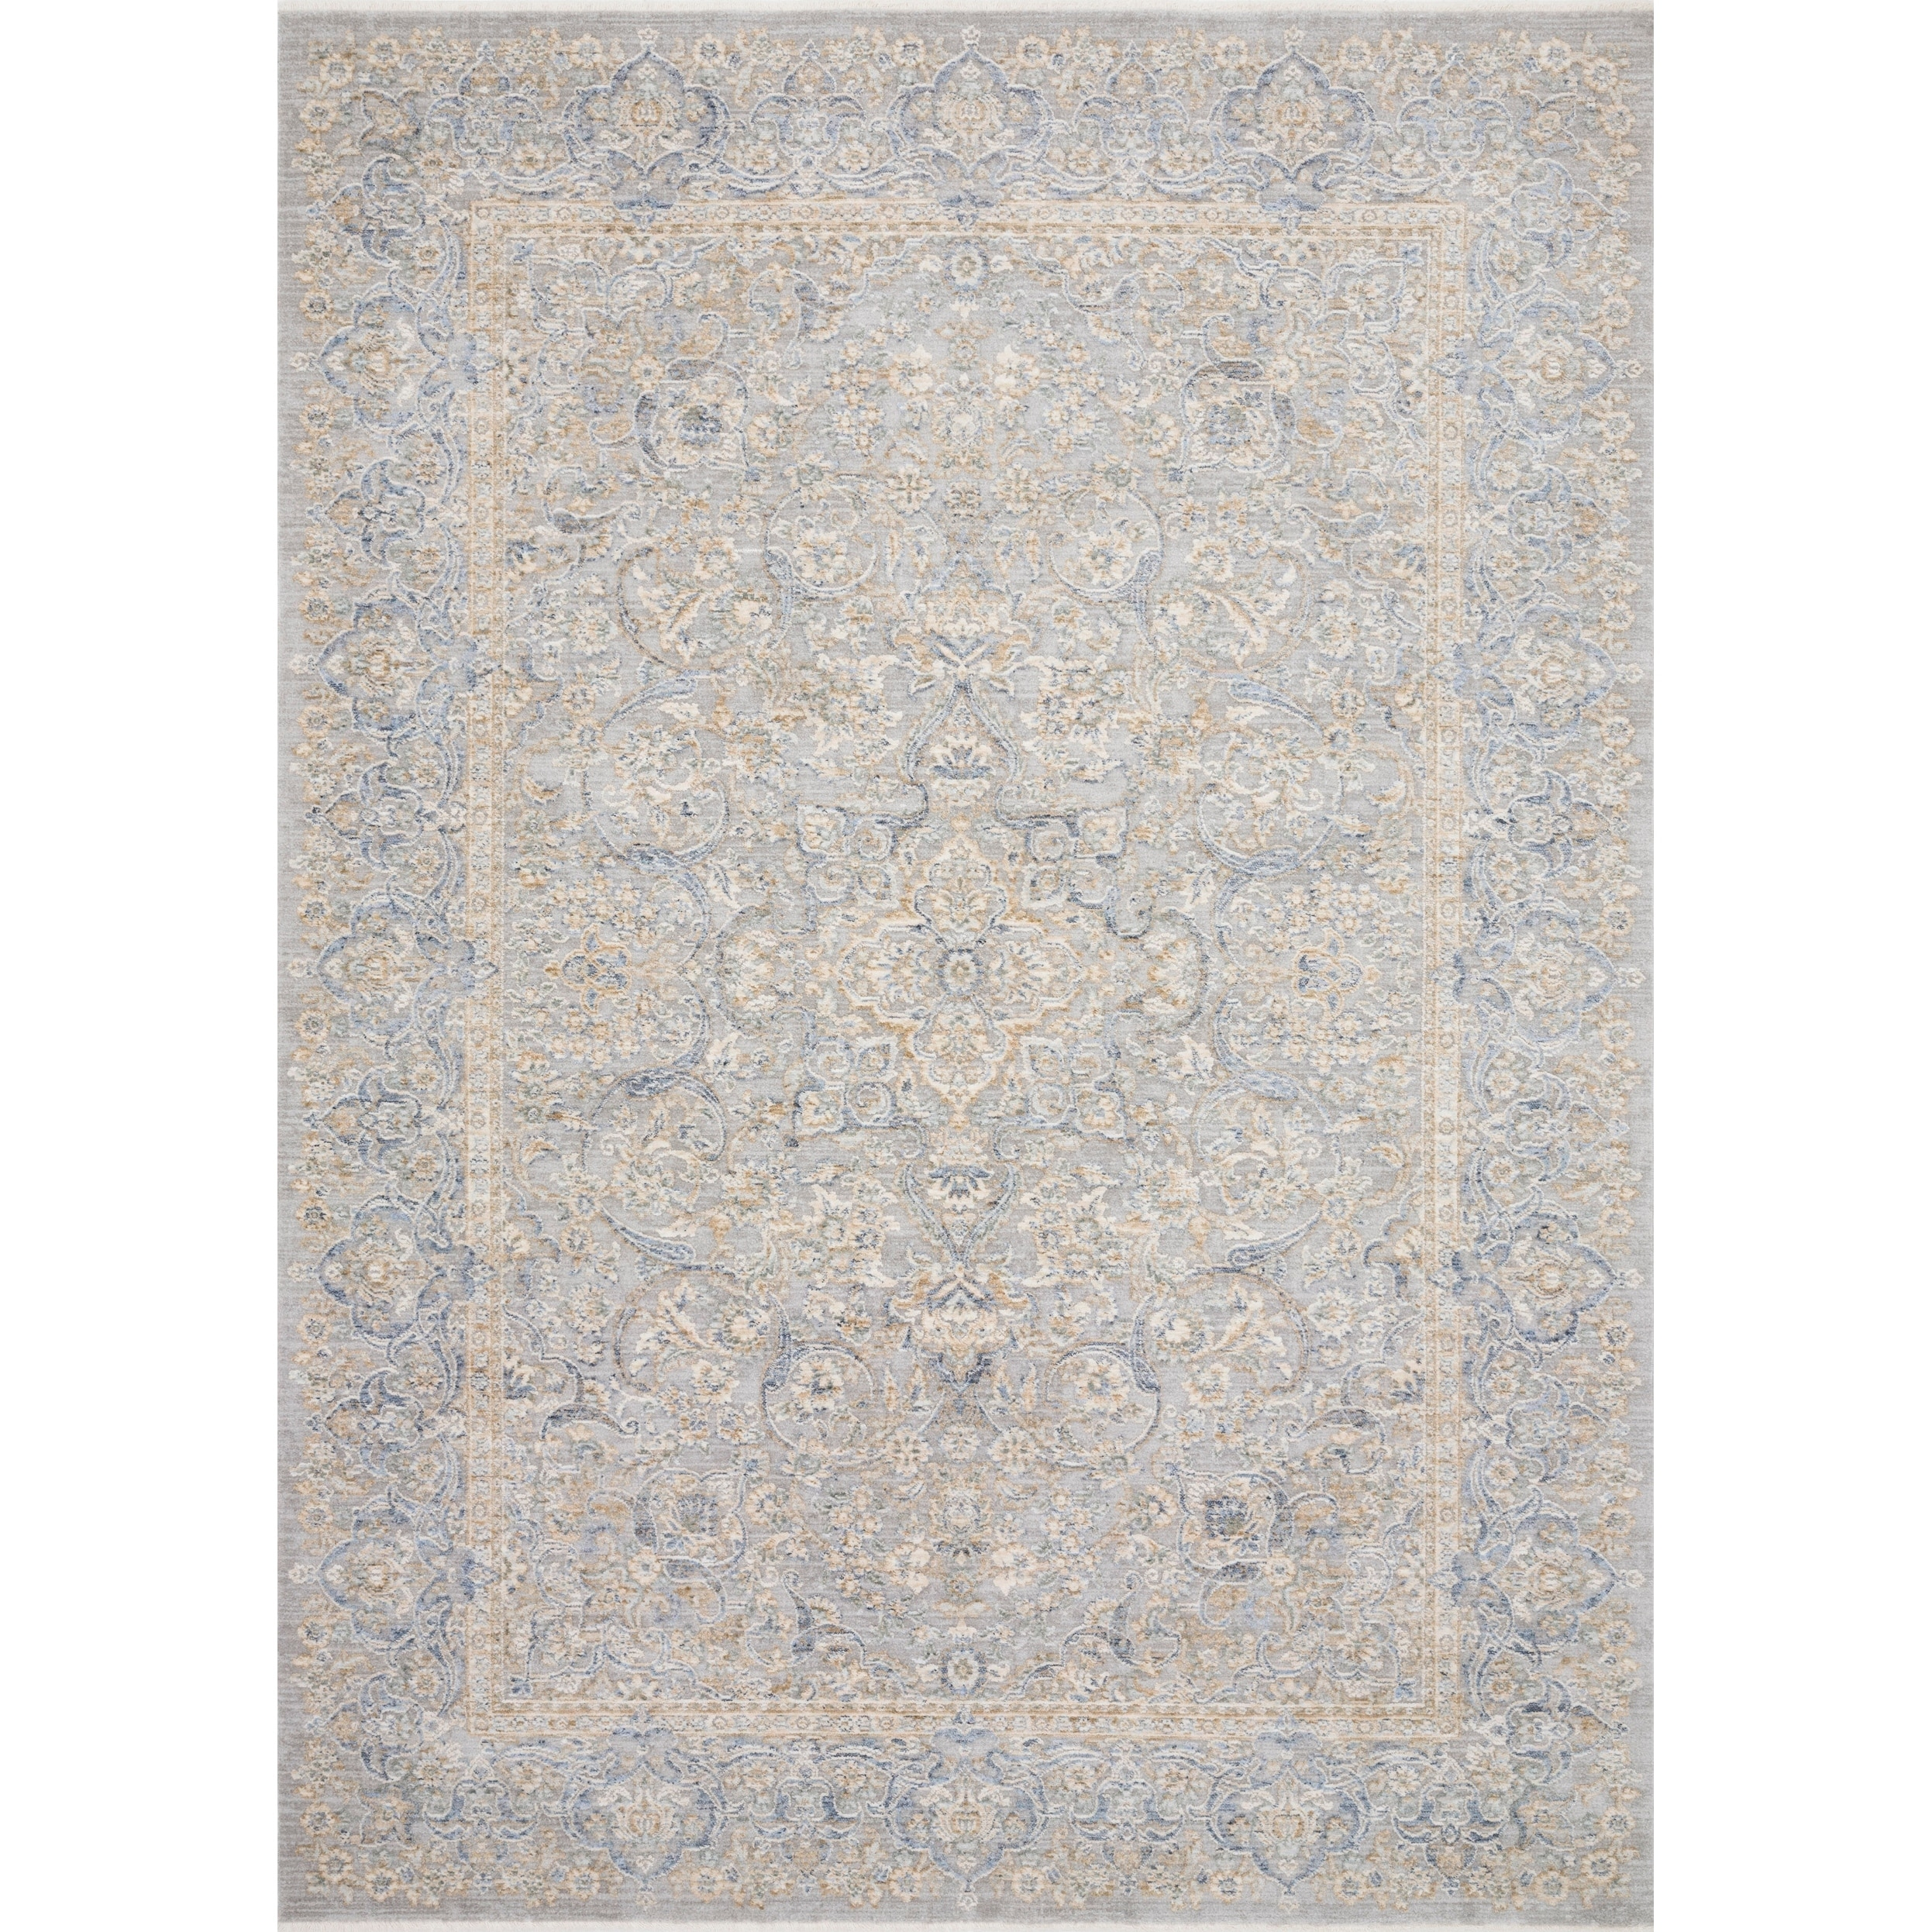 Classic Grey/ Gold Ornate Vintage Area Rug - 96 x 125 (Stone/Gold - 96 x 125)